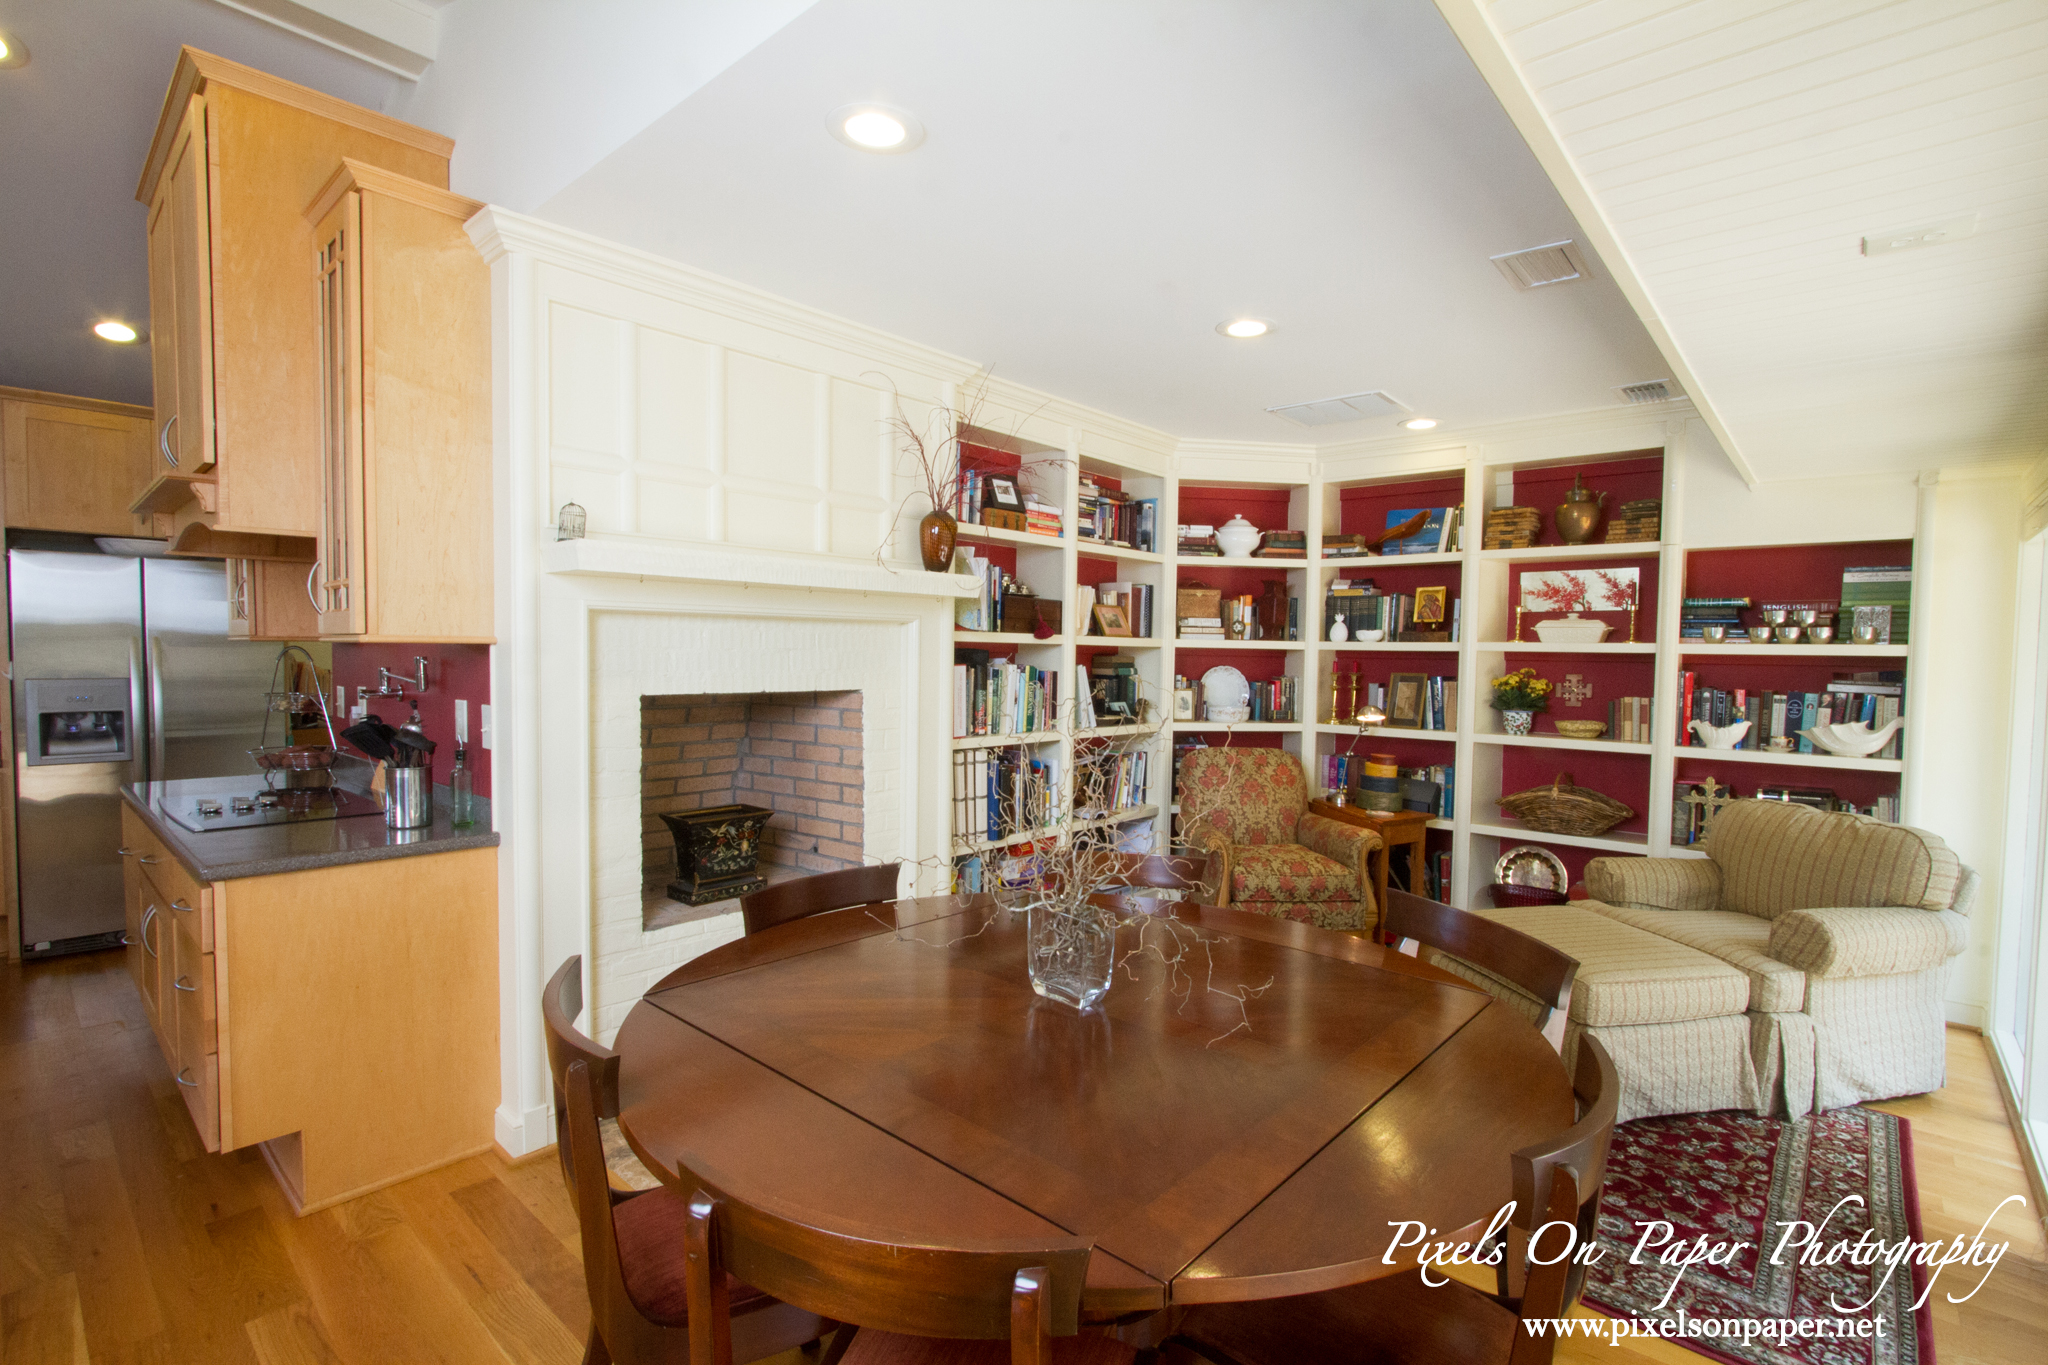 wilkesboro nc real estate photographers architectural photography photo